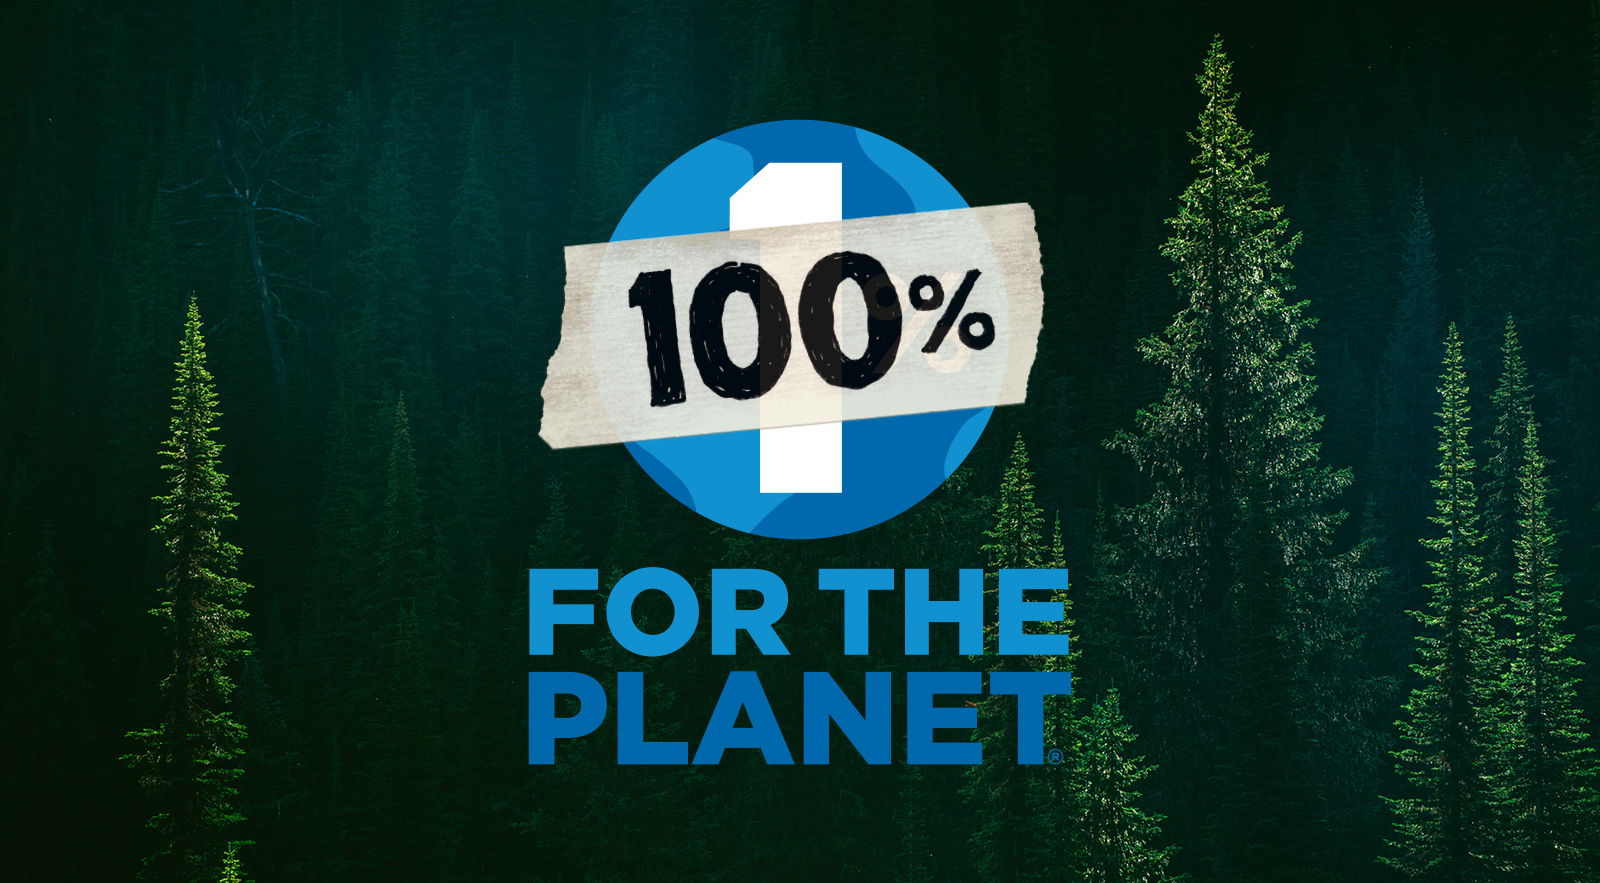 Patagonia: 100% For The Planet